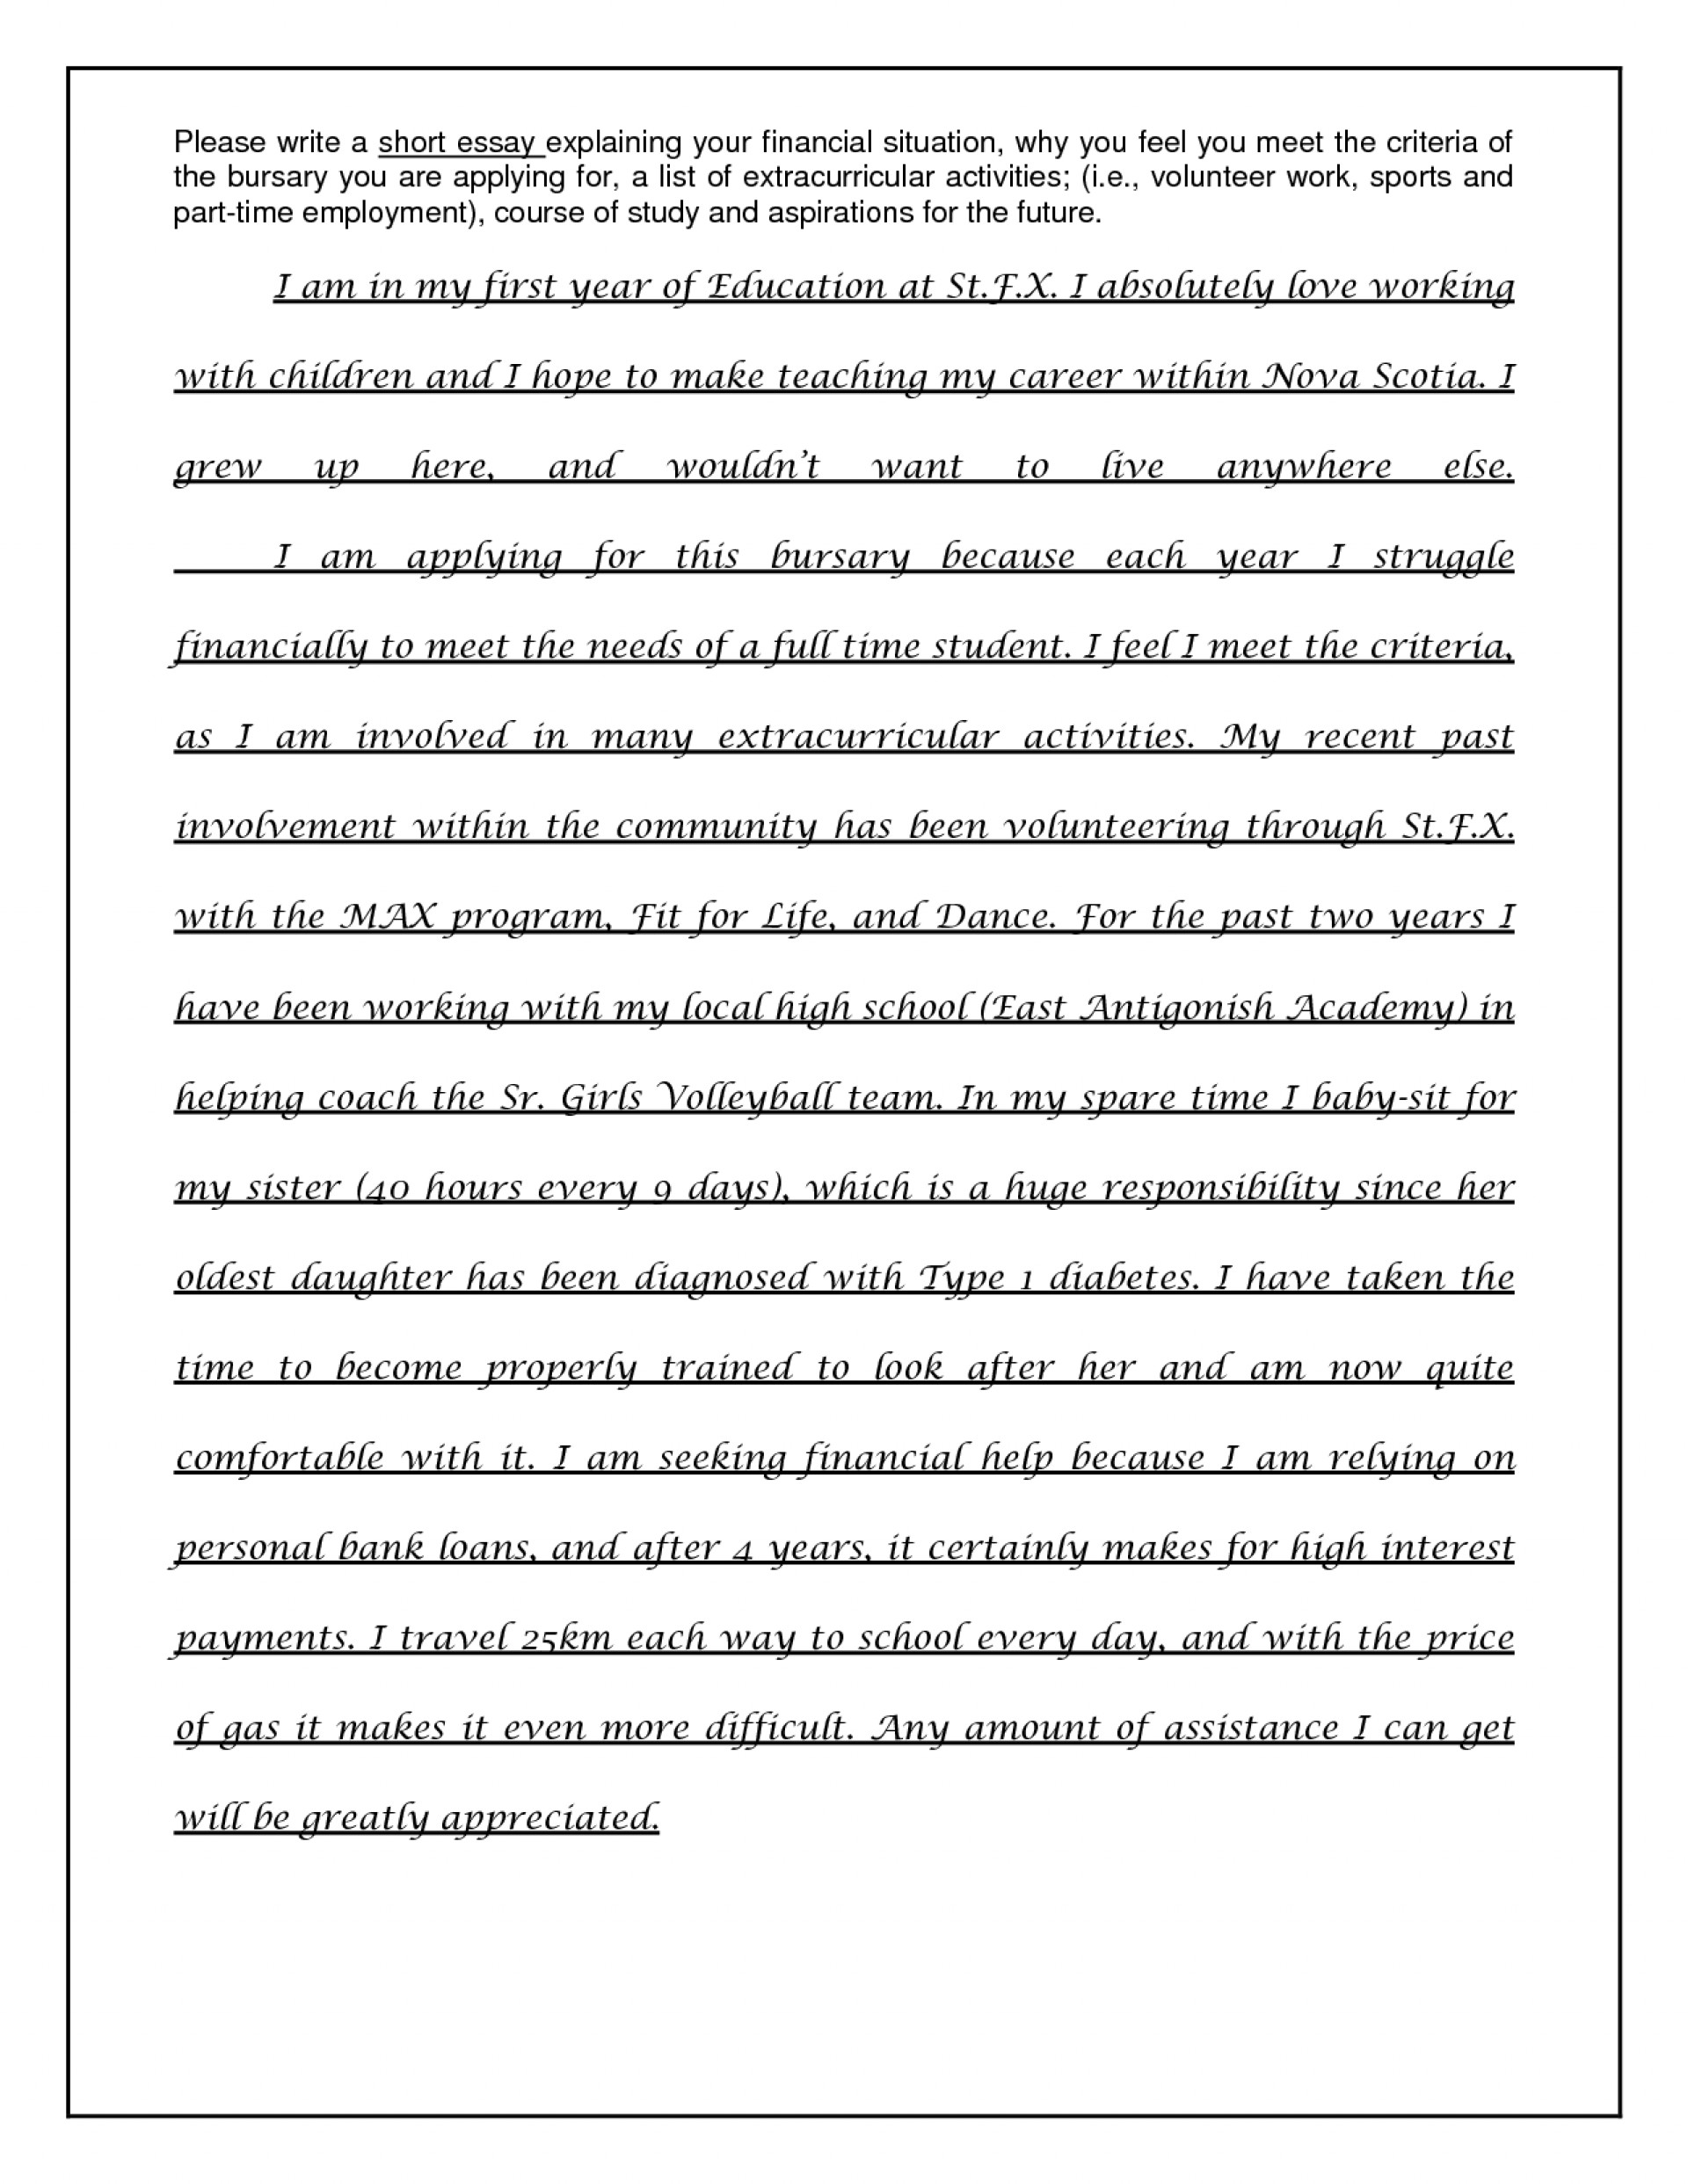 004 Examples Of Scholarship Essays On Financial Need Essay Sample Scholarships For Students How Write Essa College Based Best 1920